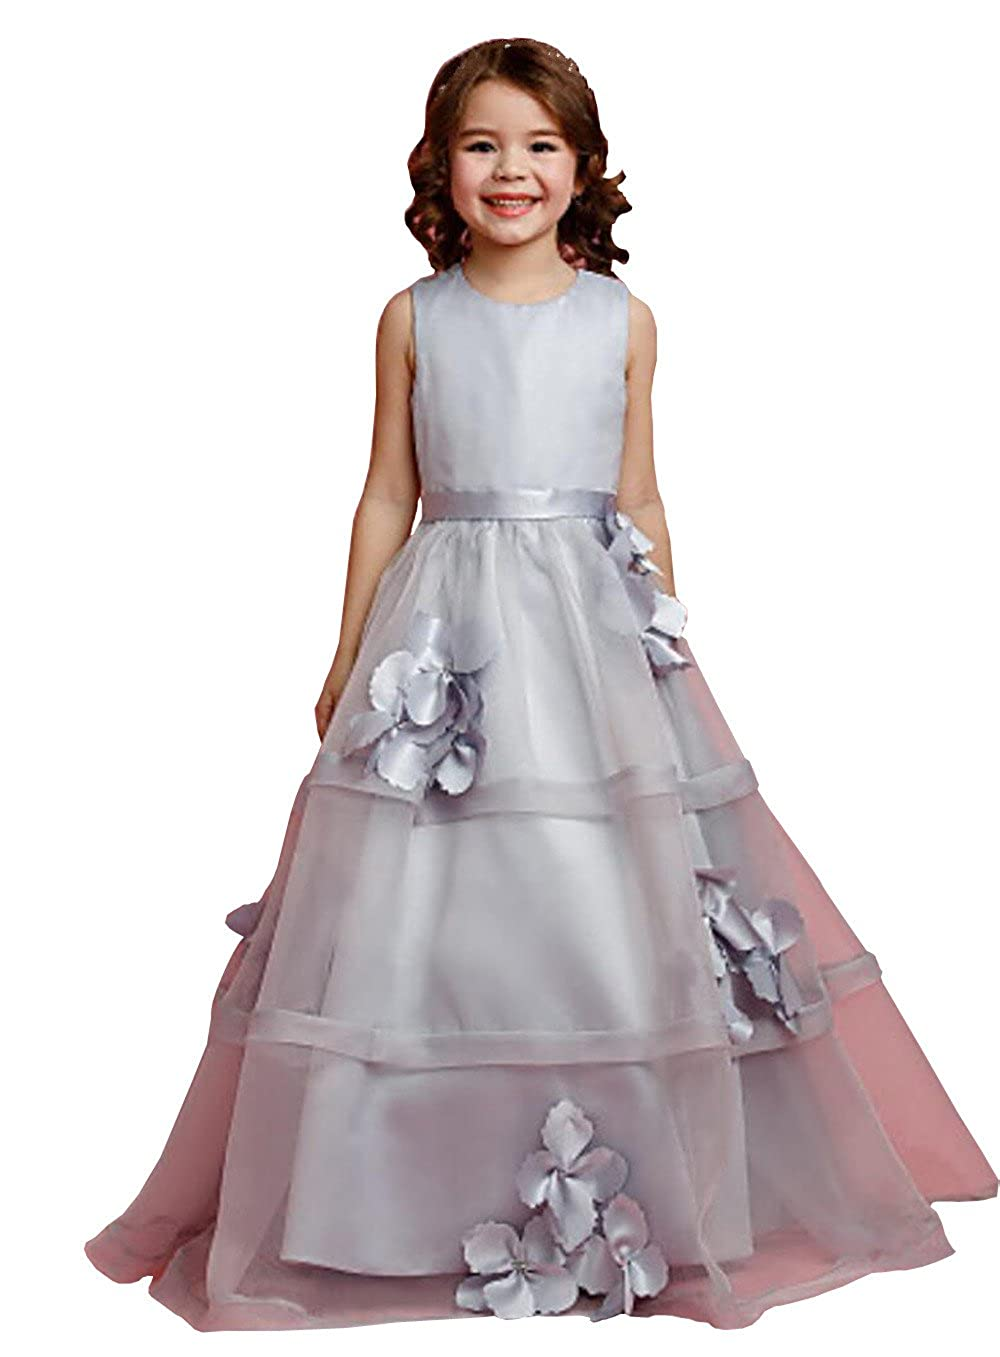 a8ec0a19c70 Cute Flower Girl Dresses - Gomes Weine AG